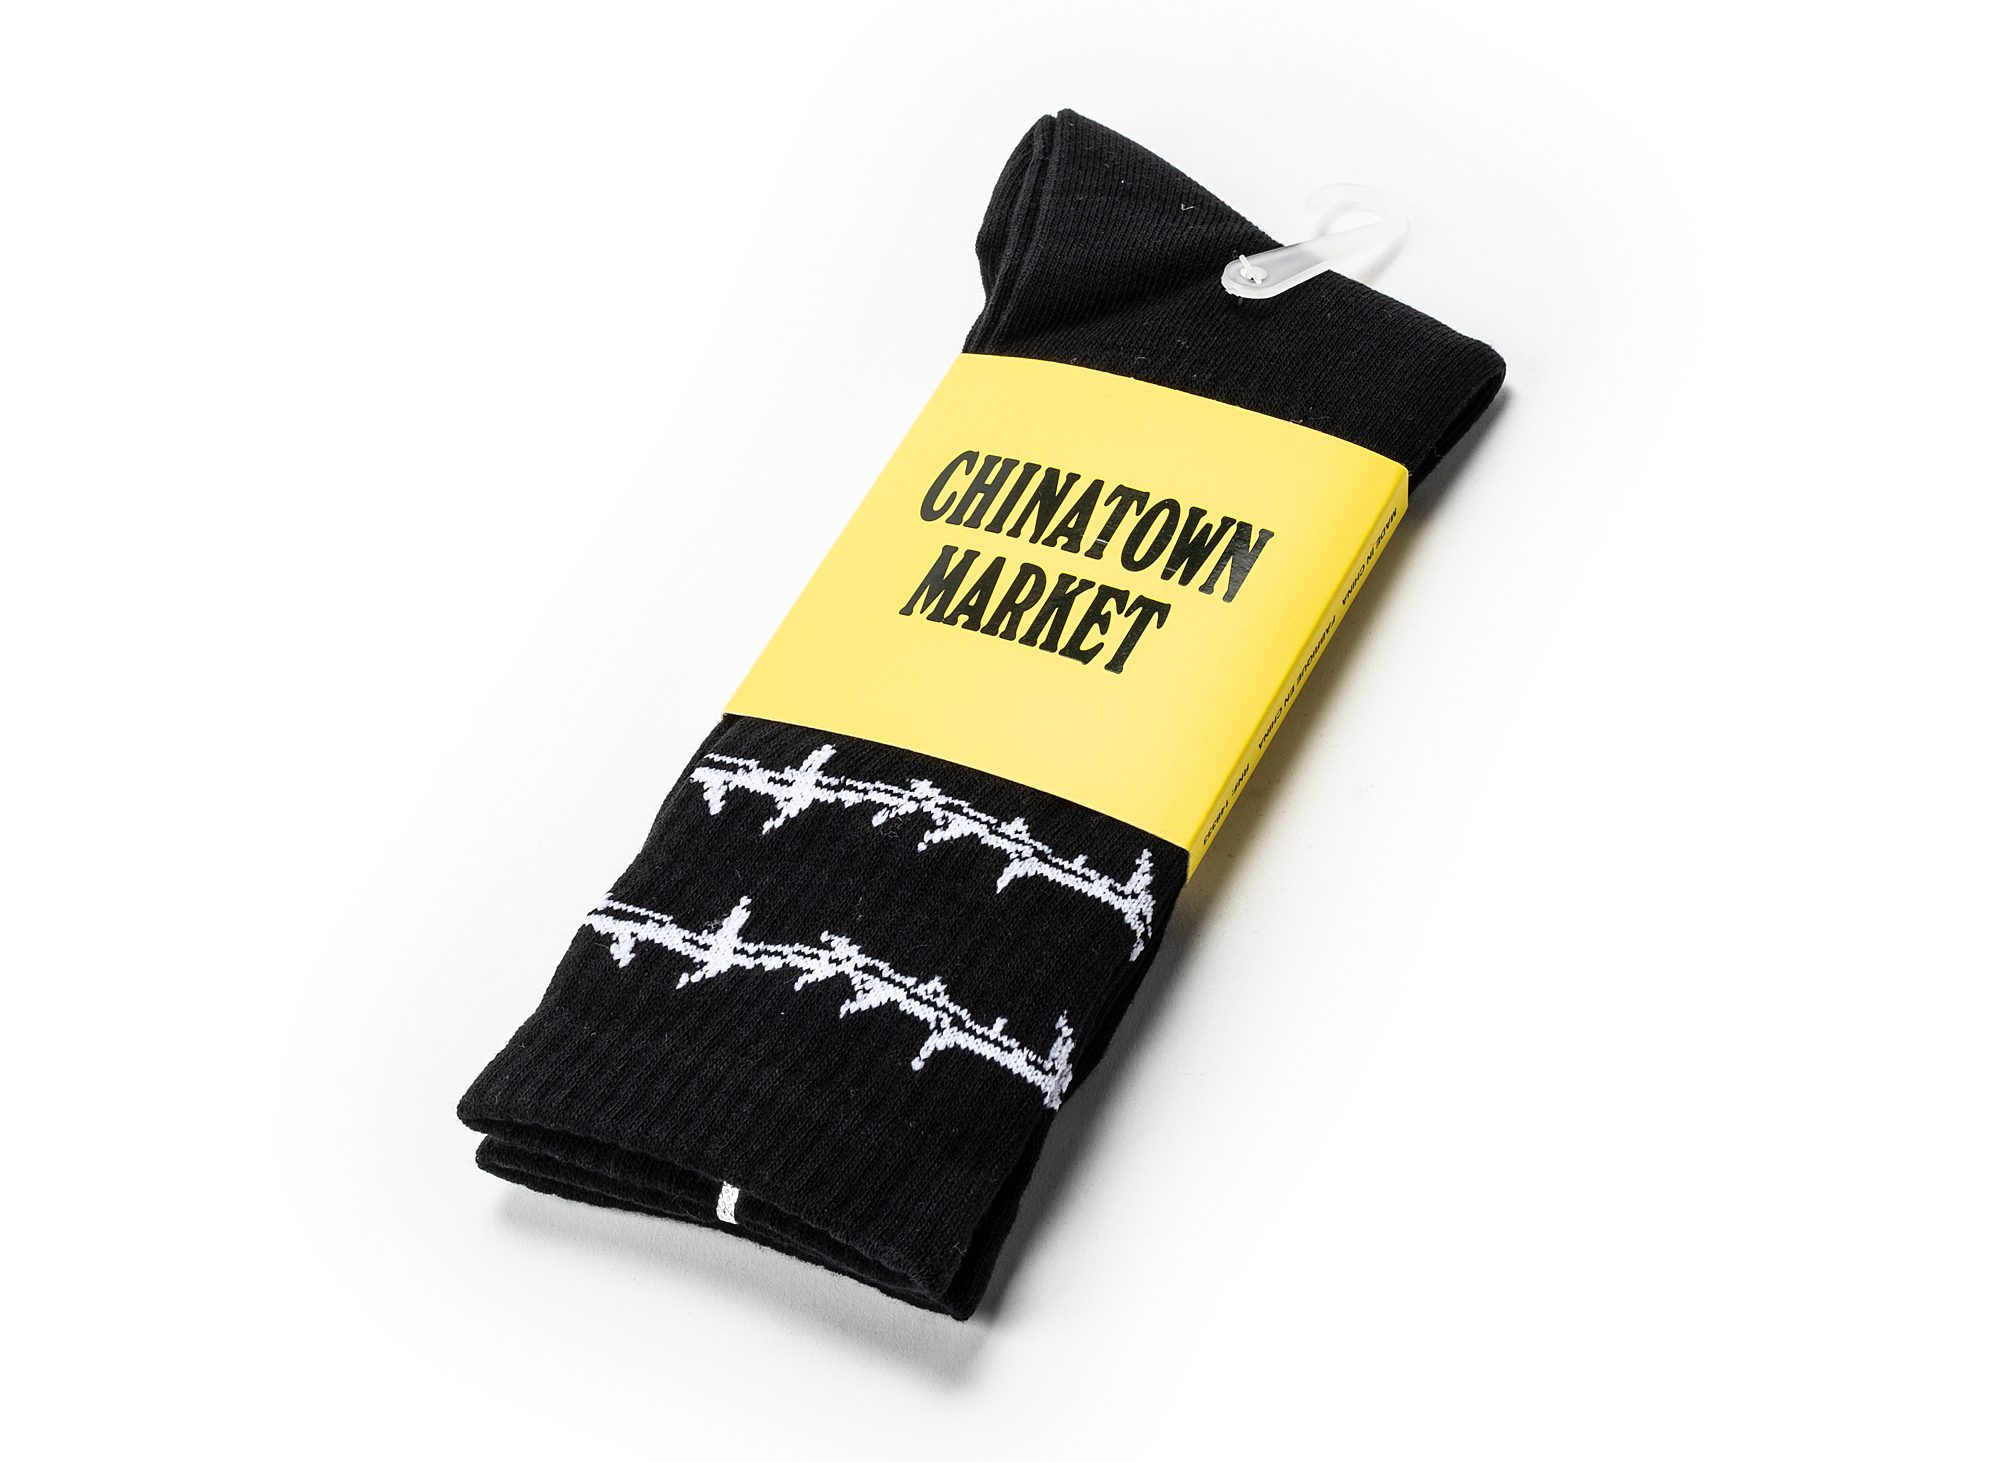 Chinatown Market Thorn Socks in Black